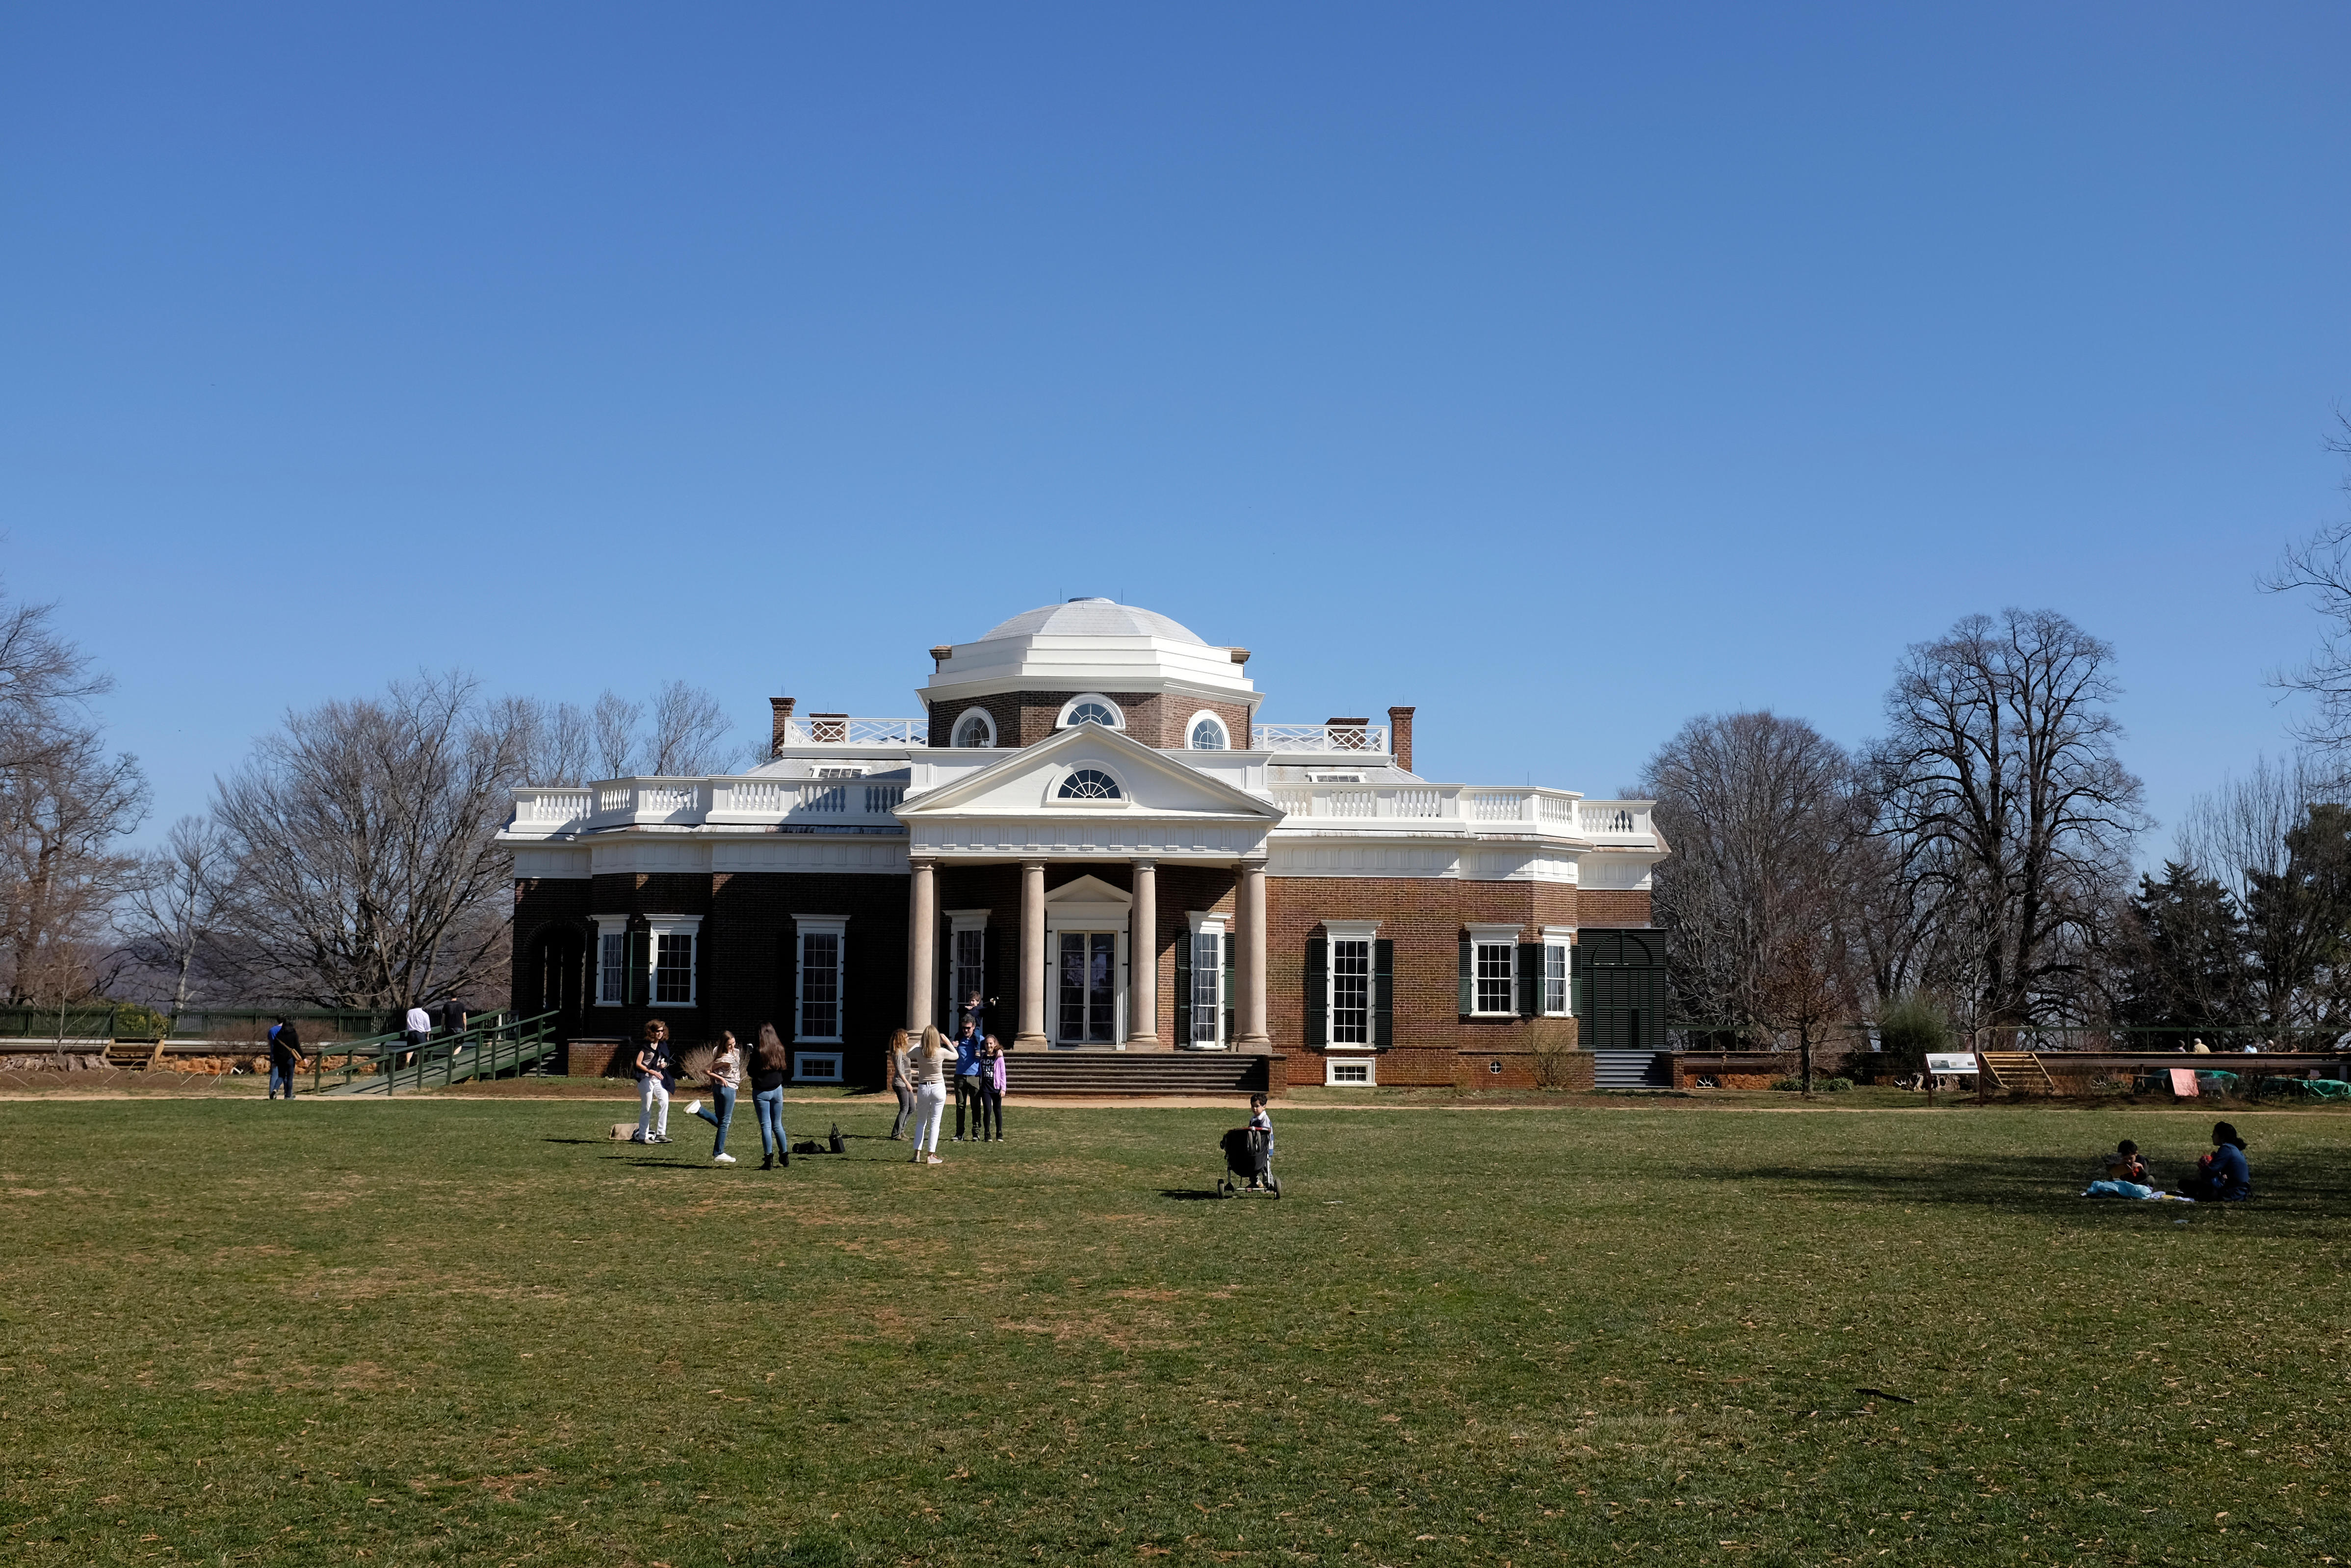 At Monticello, Mount Vernon and other plantations, talk about slavery is generating backlash - The Washington Post